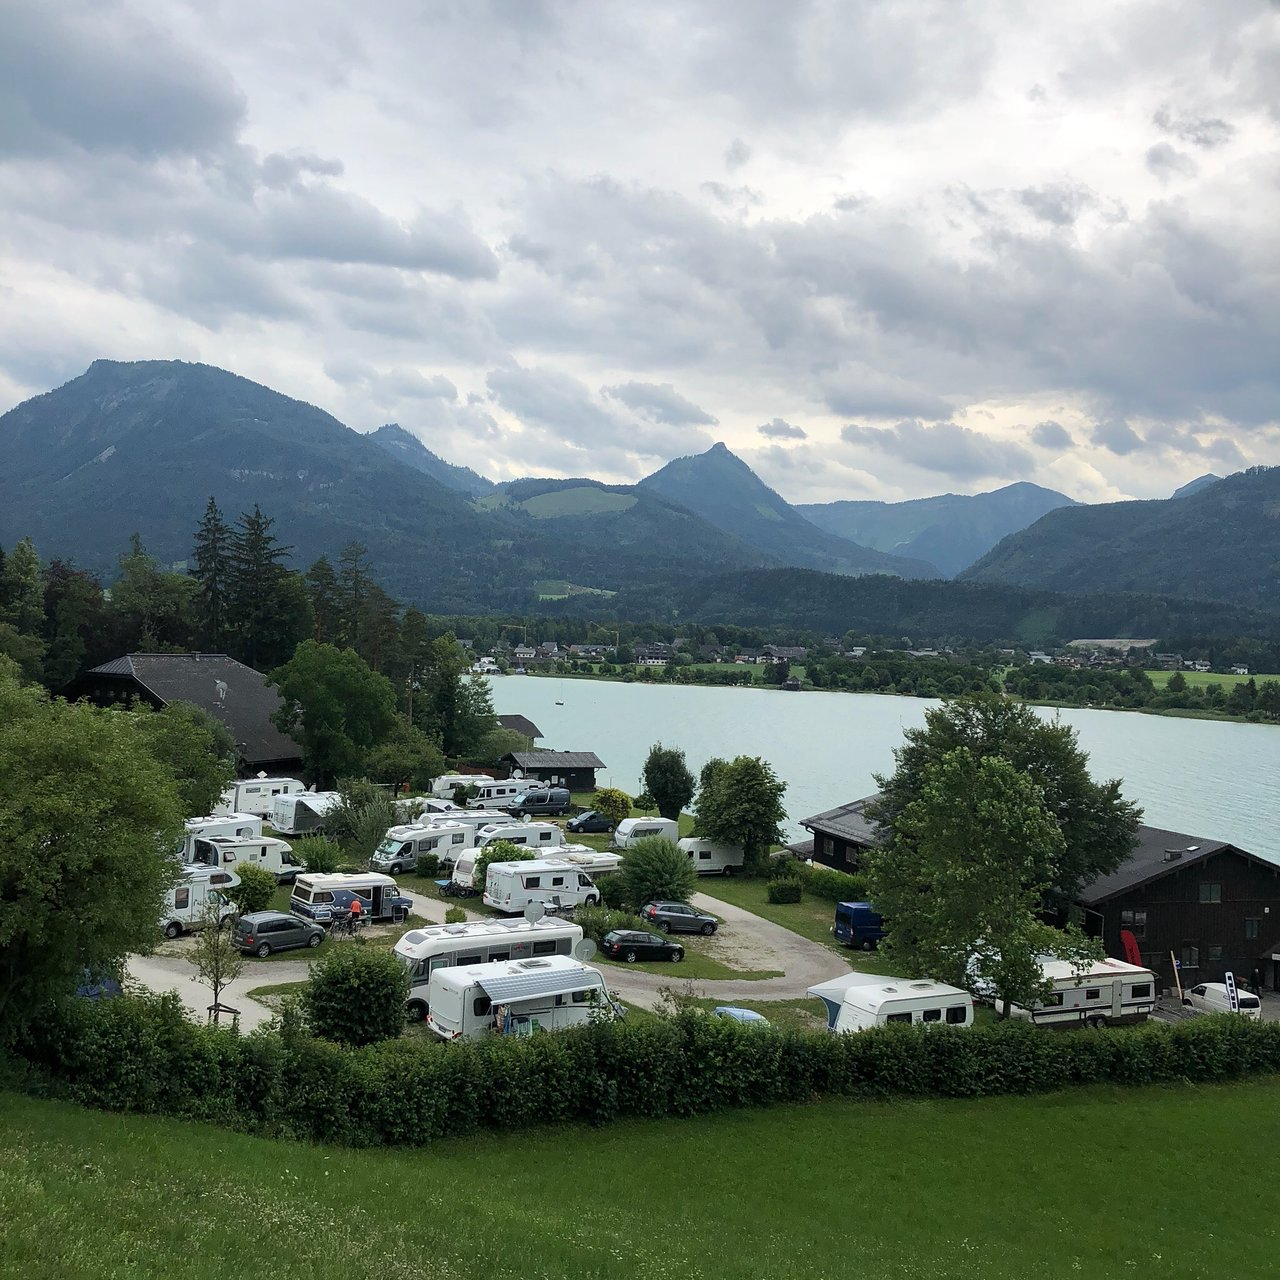 Wolfgang Weiss Bad Ischl The Best St Wolfgang Camping Of 2019 With Prices